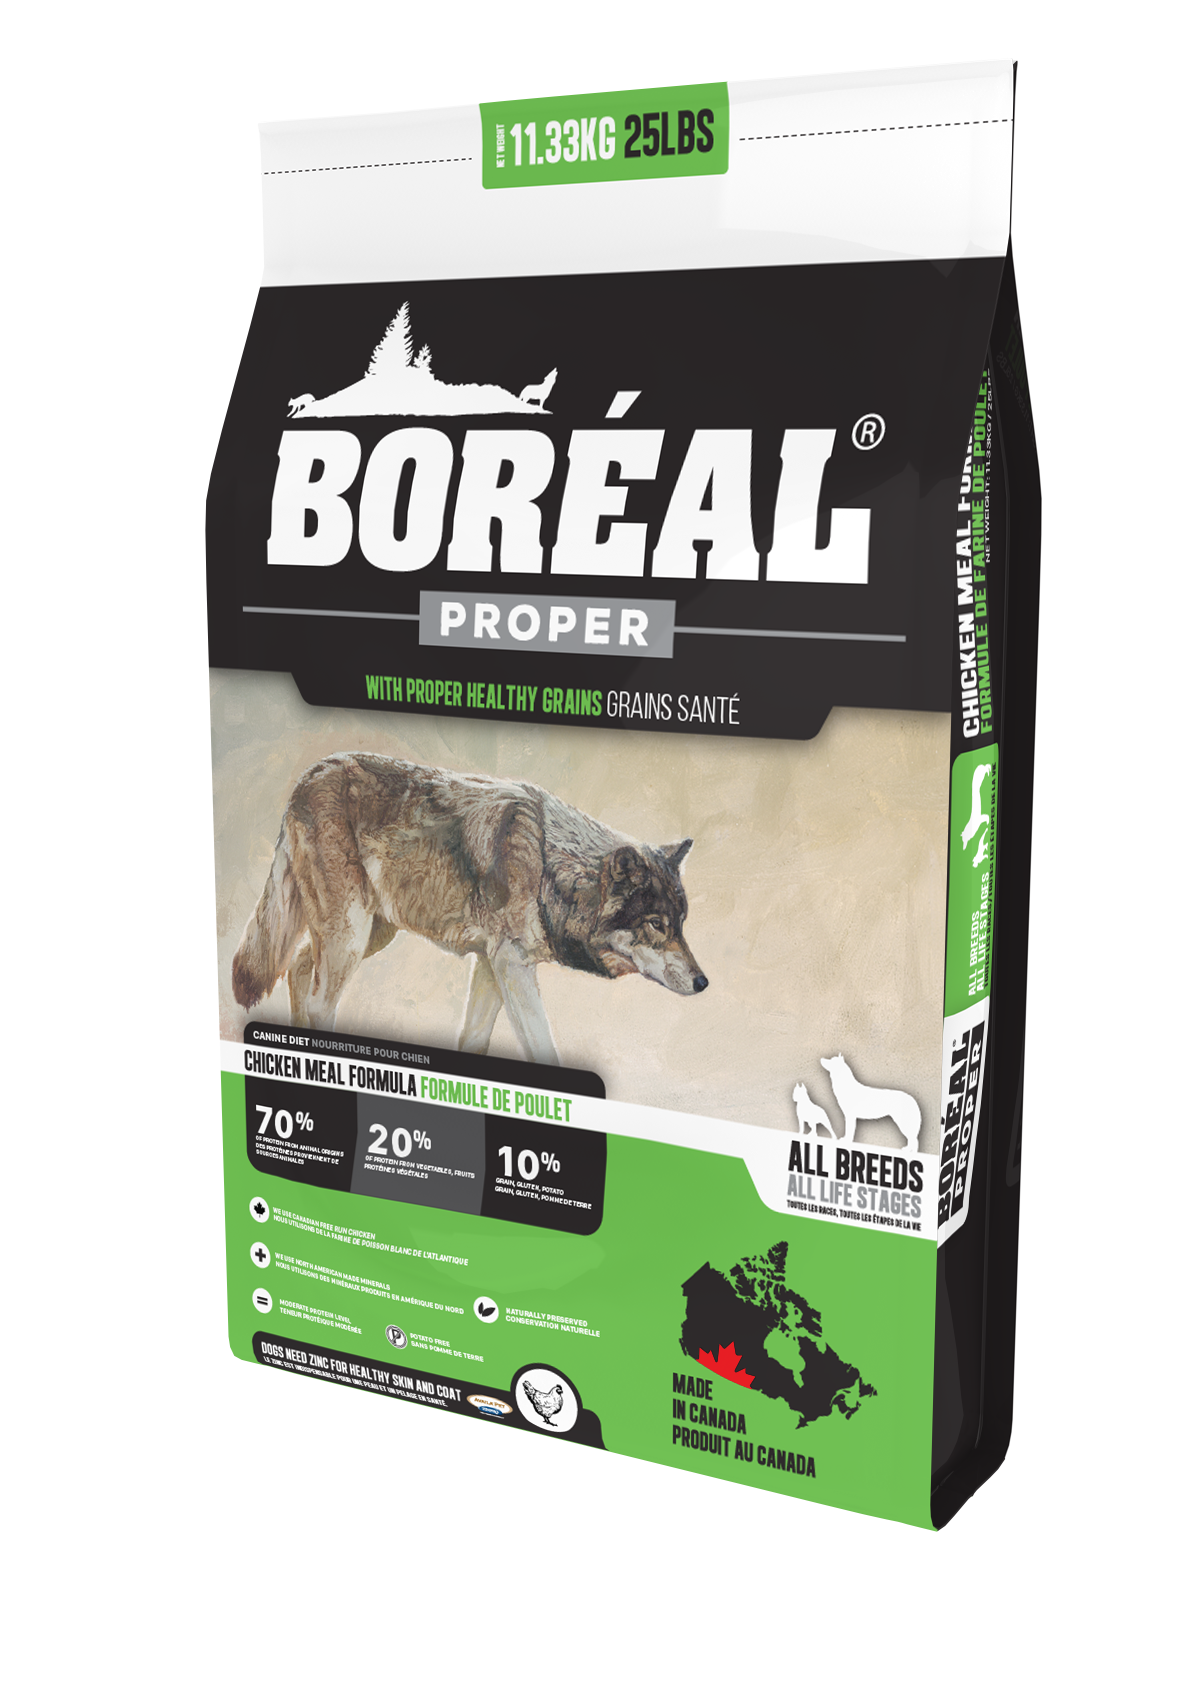 Boreal Proper Chicken Meal Low Carb Grains Dry Dog Food, 11.33kg bag